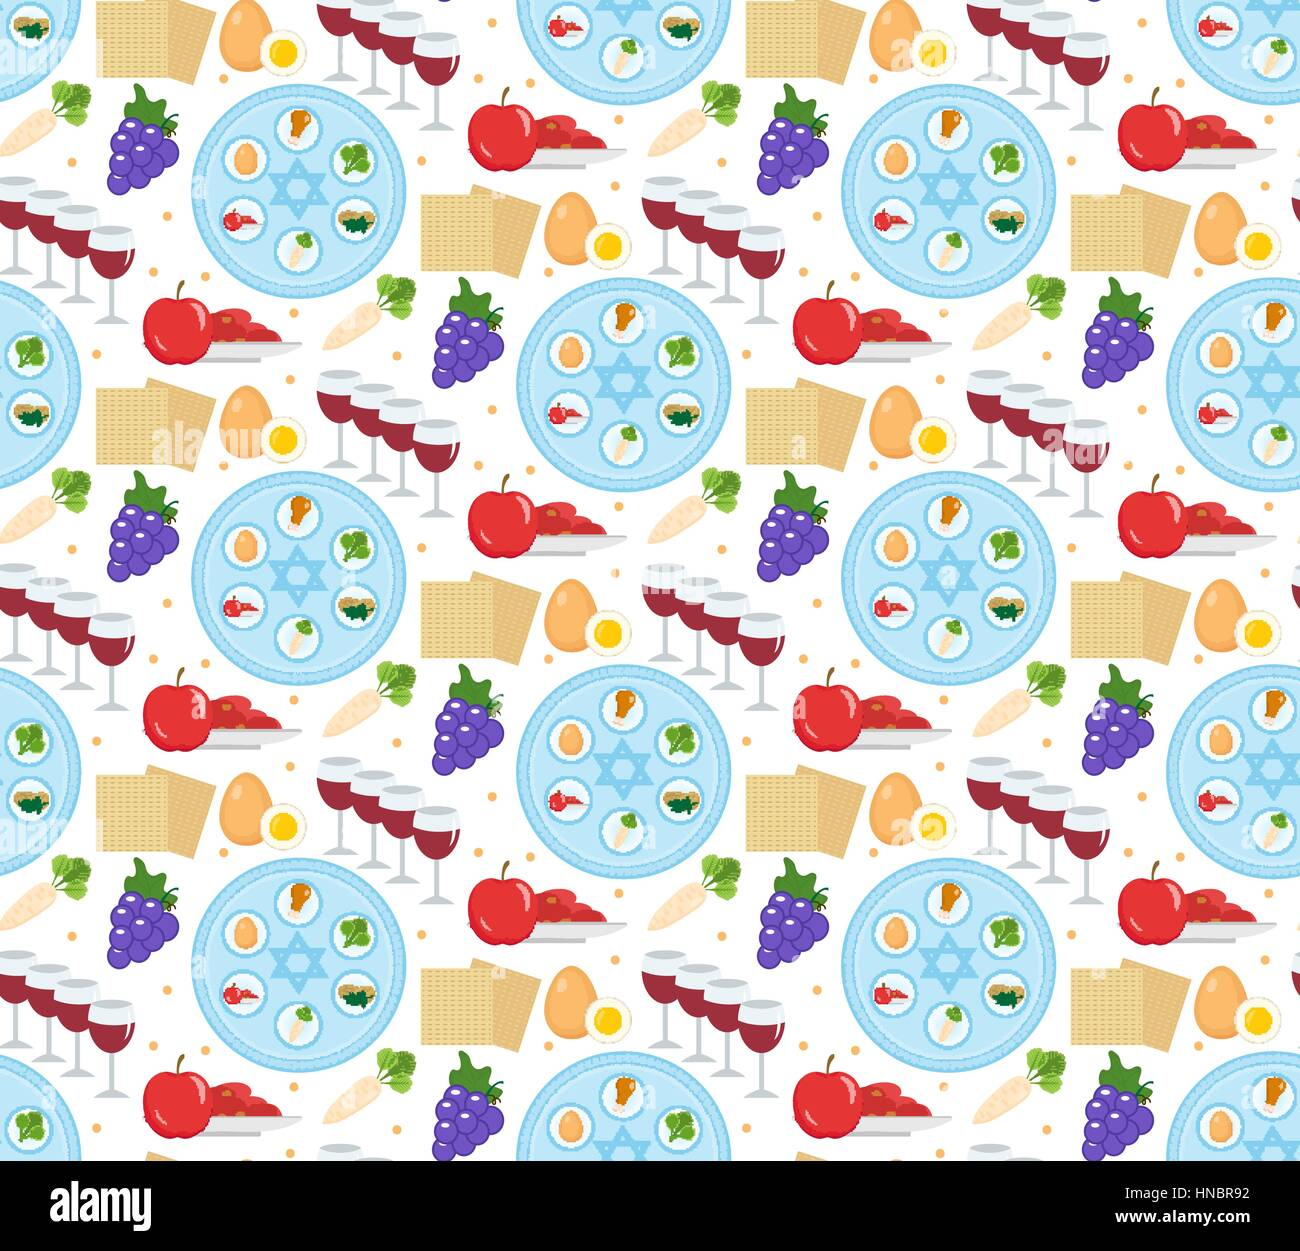 Passover seamless pattern. Pesach endless background, texture. Jewish holiday backdrop. Vector illustration. Stock Vector